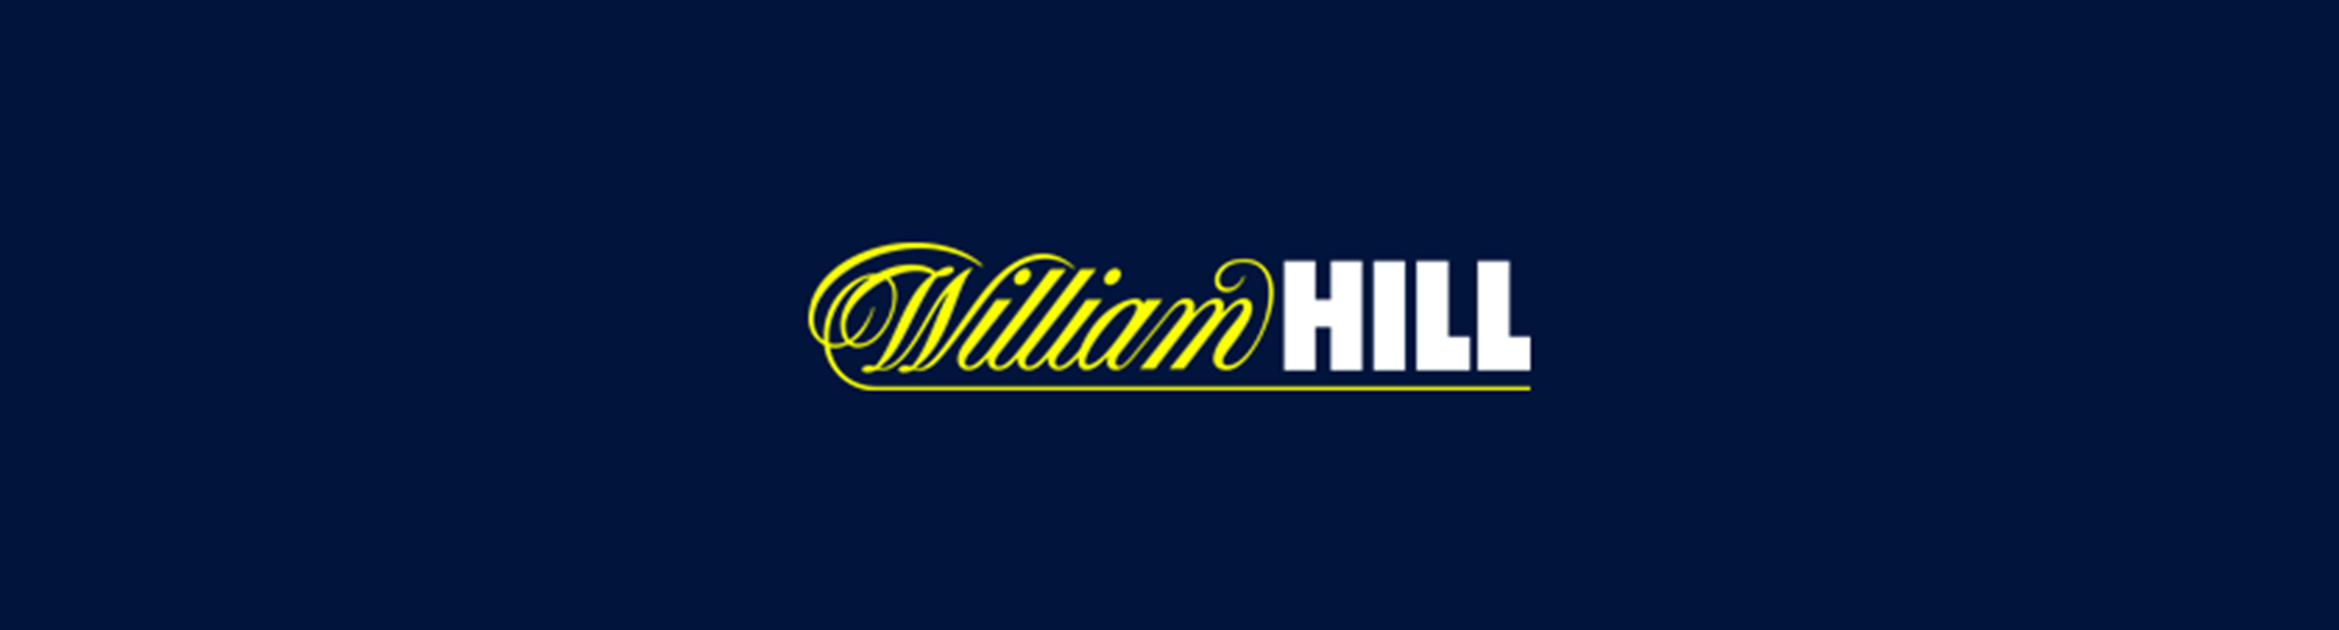 William Hills Review – What offers and prices will you get on their betting odds?